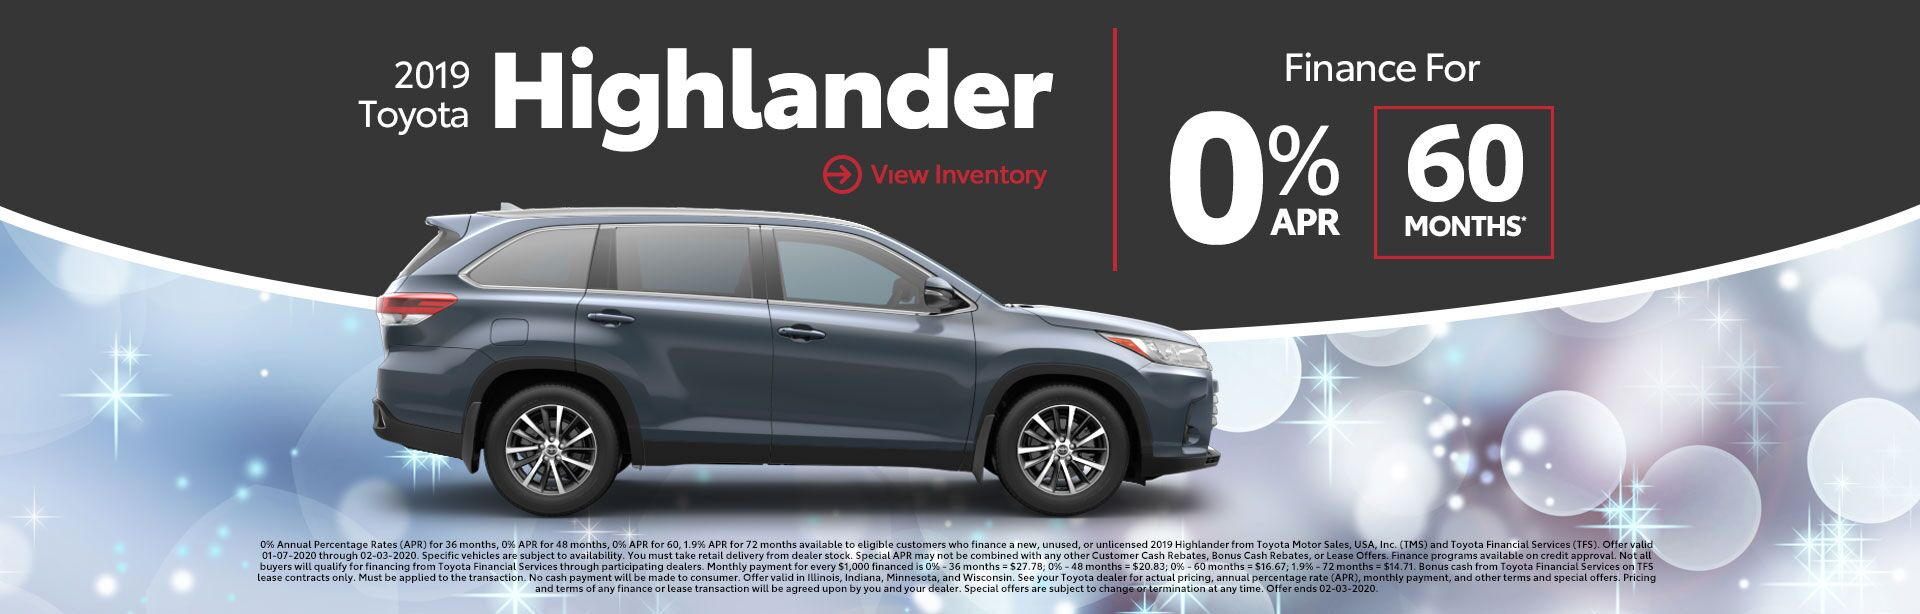 2019 Toyota Highlander 0% APR 60 Months